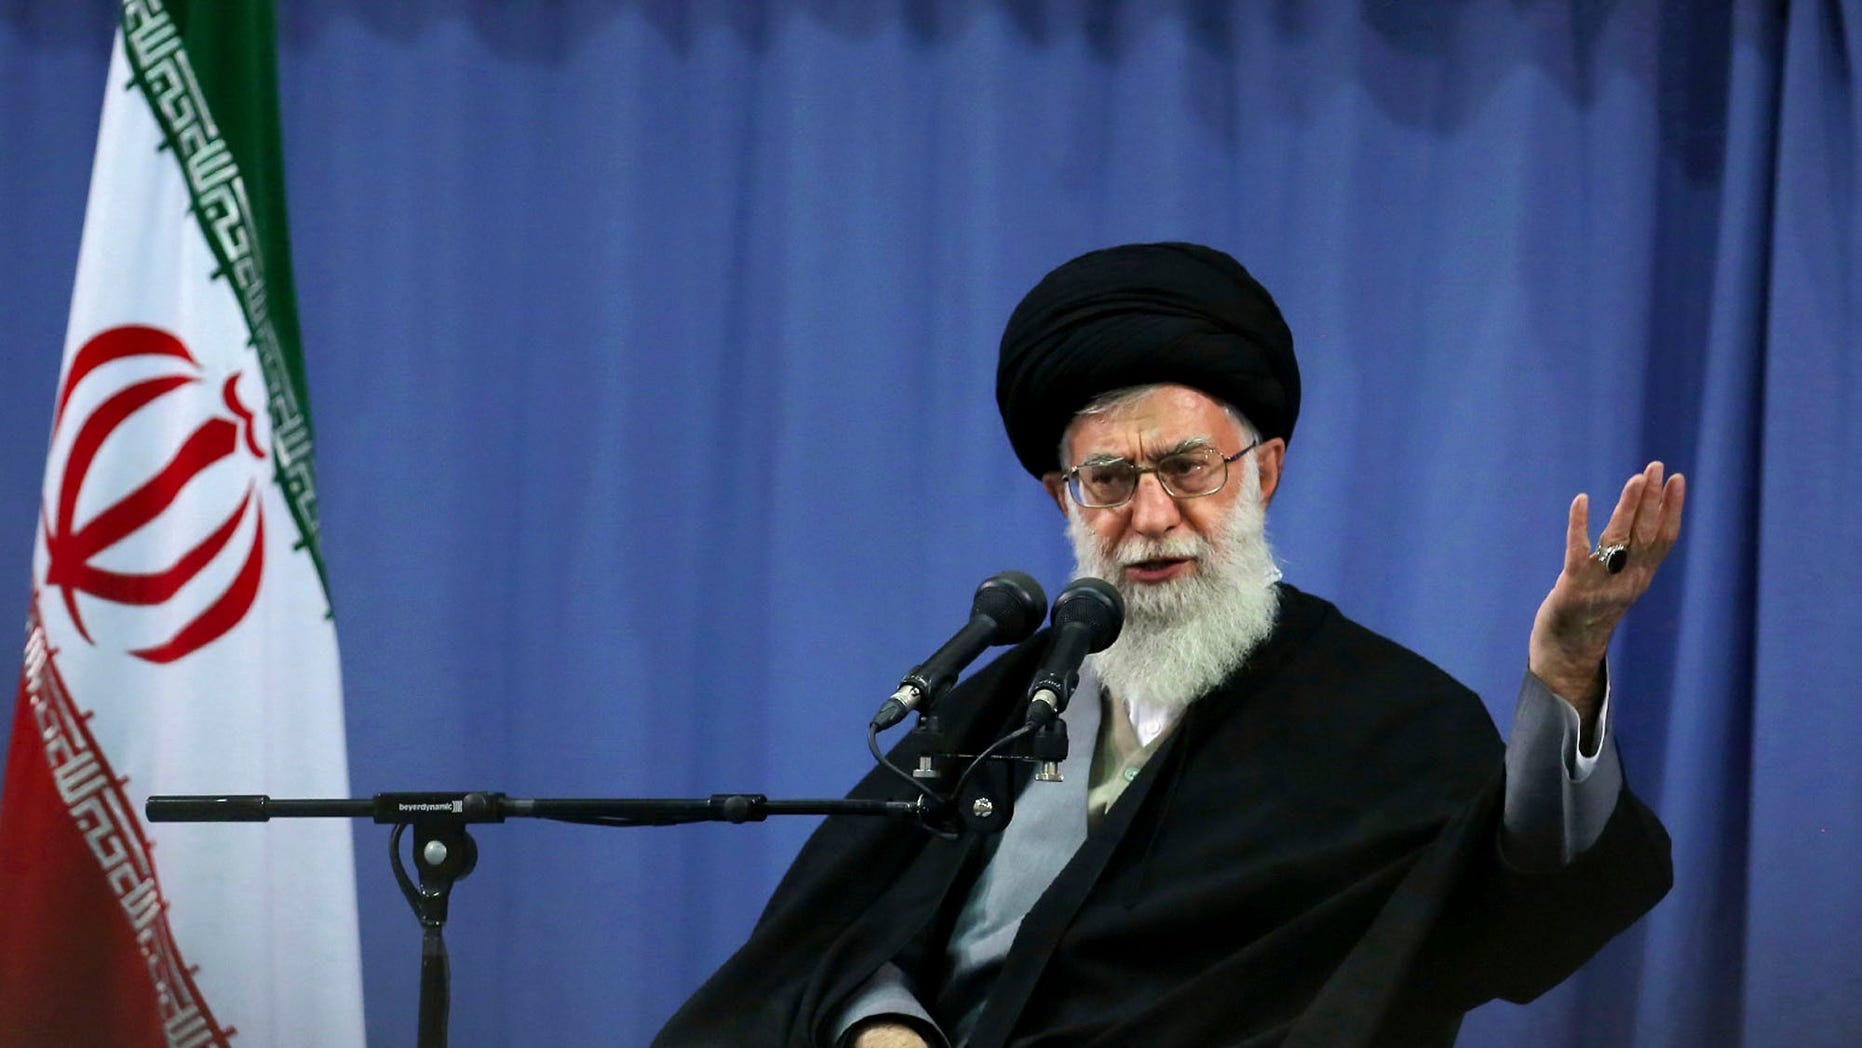 In this photo released by an official website of the Iranian supreme leader's office, supreme leader Ayatollah Ali Khamenei, addresses a group of Iranian military commanders in Tehran, Iran, Wednesday, April 17, 2013. Iran's top leader has condemned the bombing attack in Boston but at the same time charged that U.S. policies employ a double standard. (AP Photo/Office of the Supreme Leader)